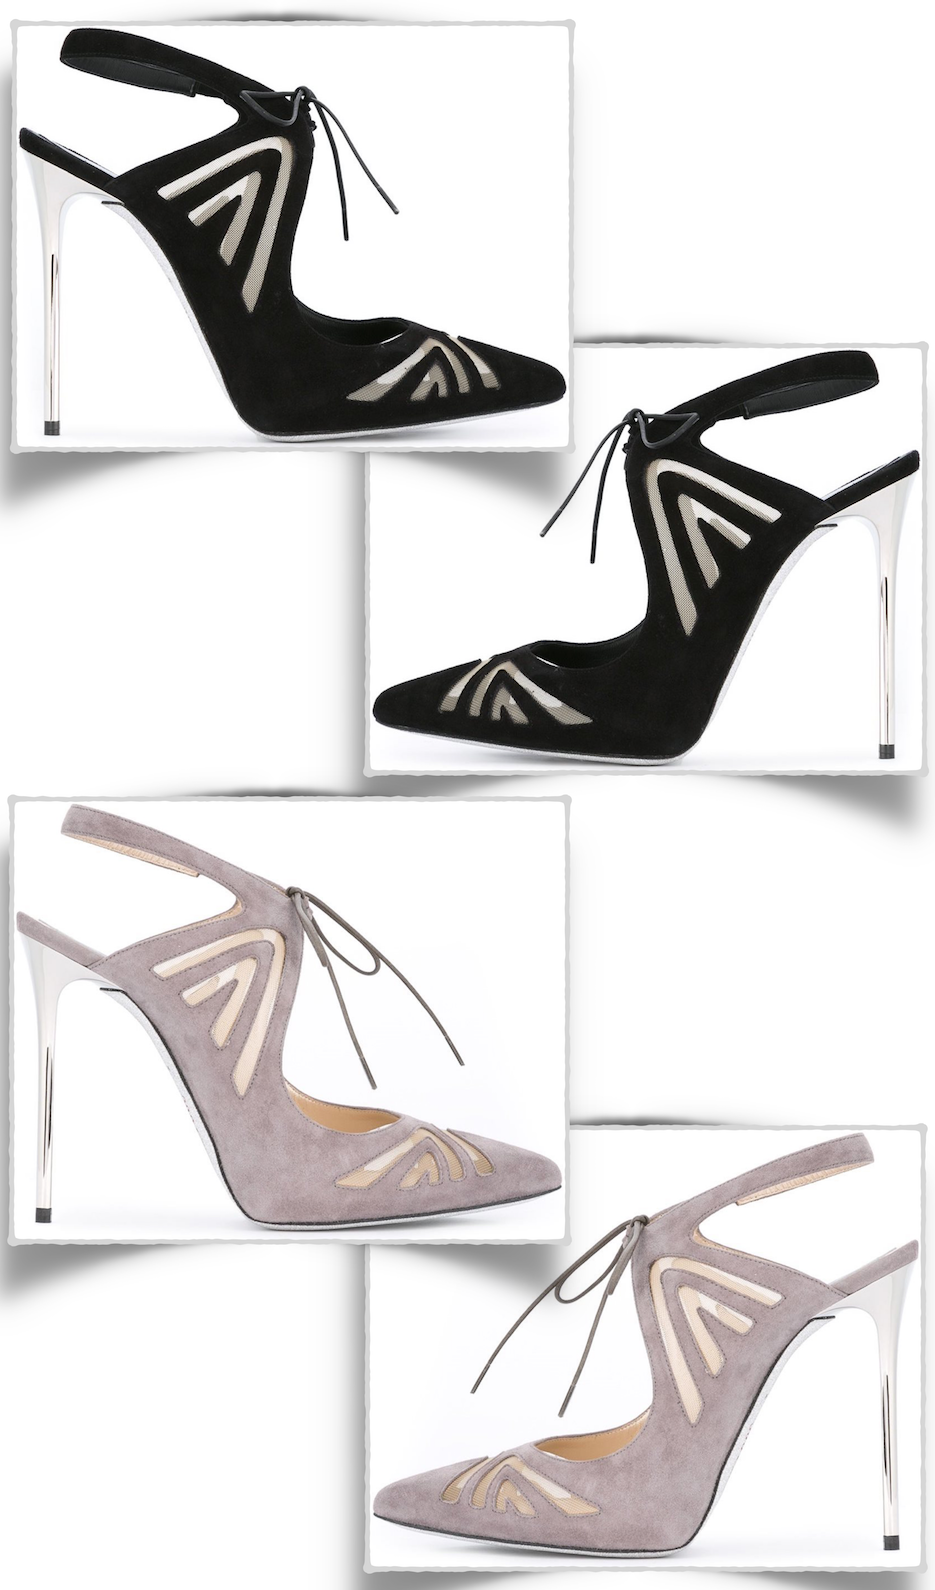 RENÉ CAOVILLA Mesh Insert Stiletto Pumps in Grey and Black